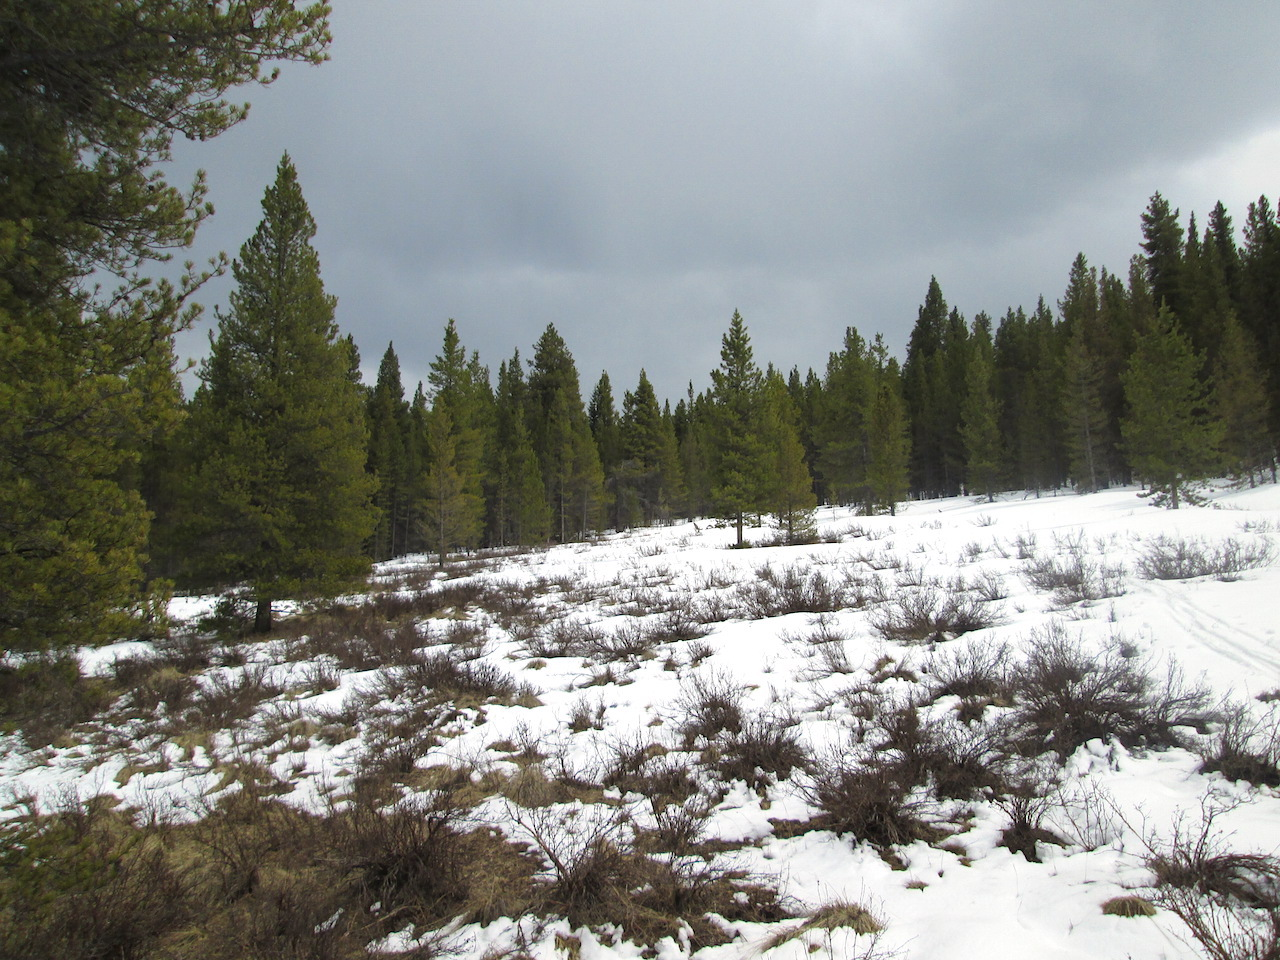 Bare ground, bushes, and patches of only the most recent snow were found in the lower end of the CODOS Park Cone site meadow, but snowcover improved at the upper end of the meadow, where CODOS snow profiles are performed.